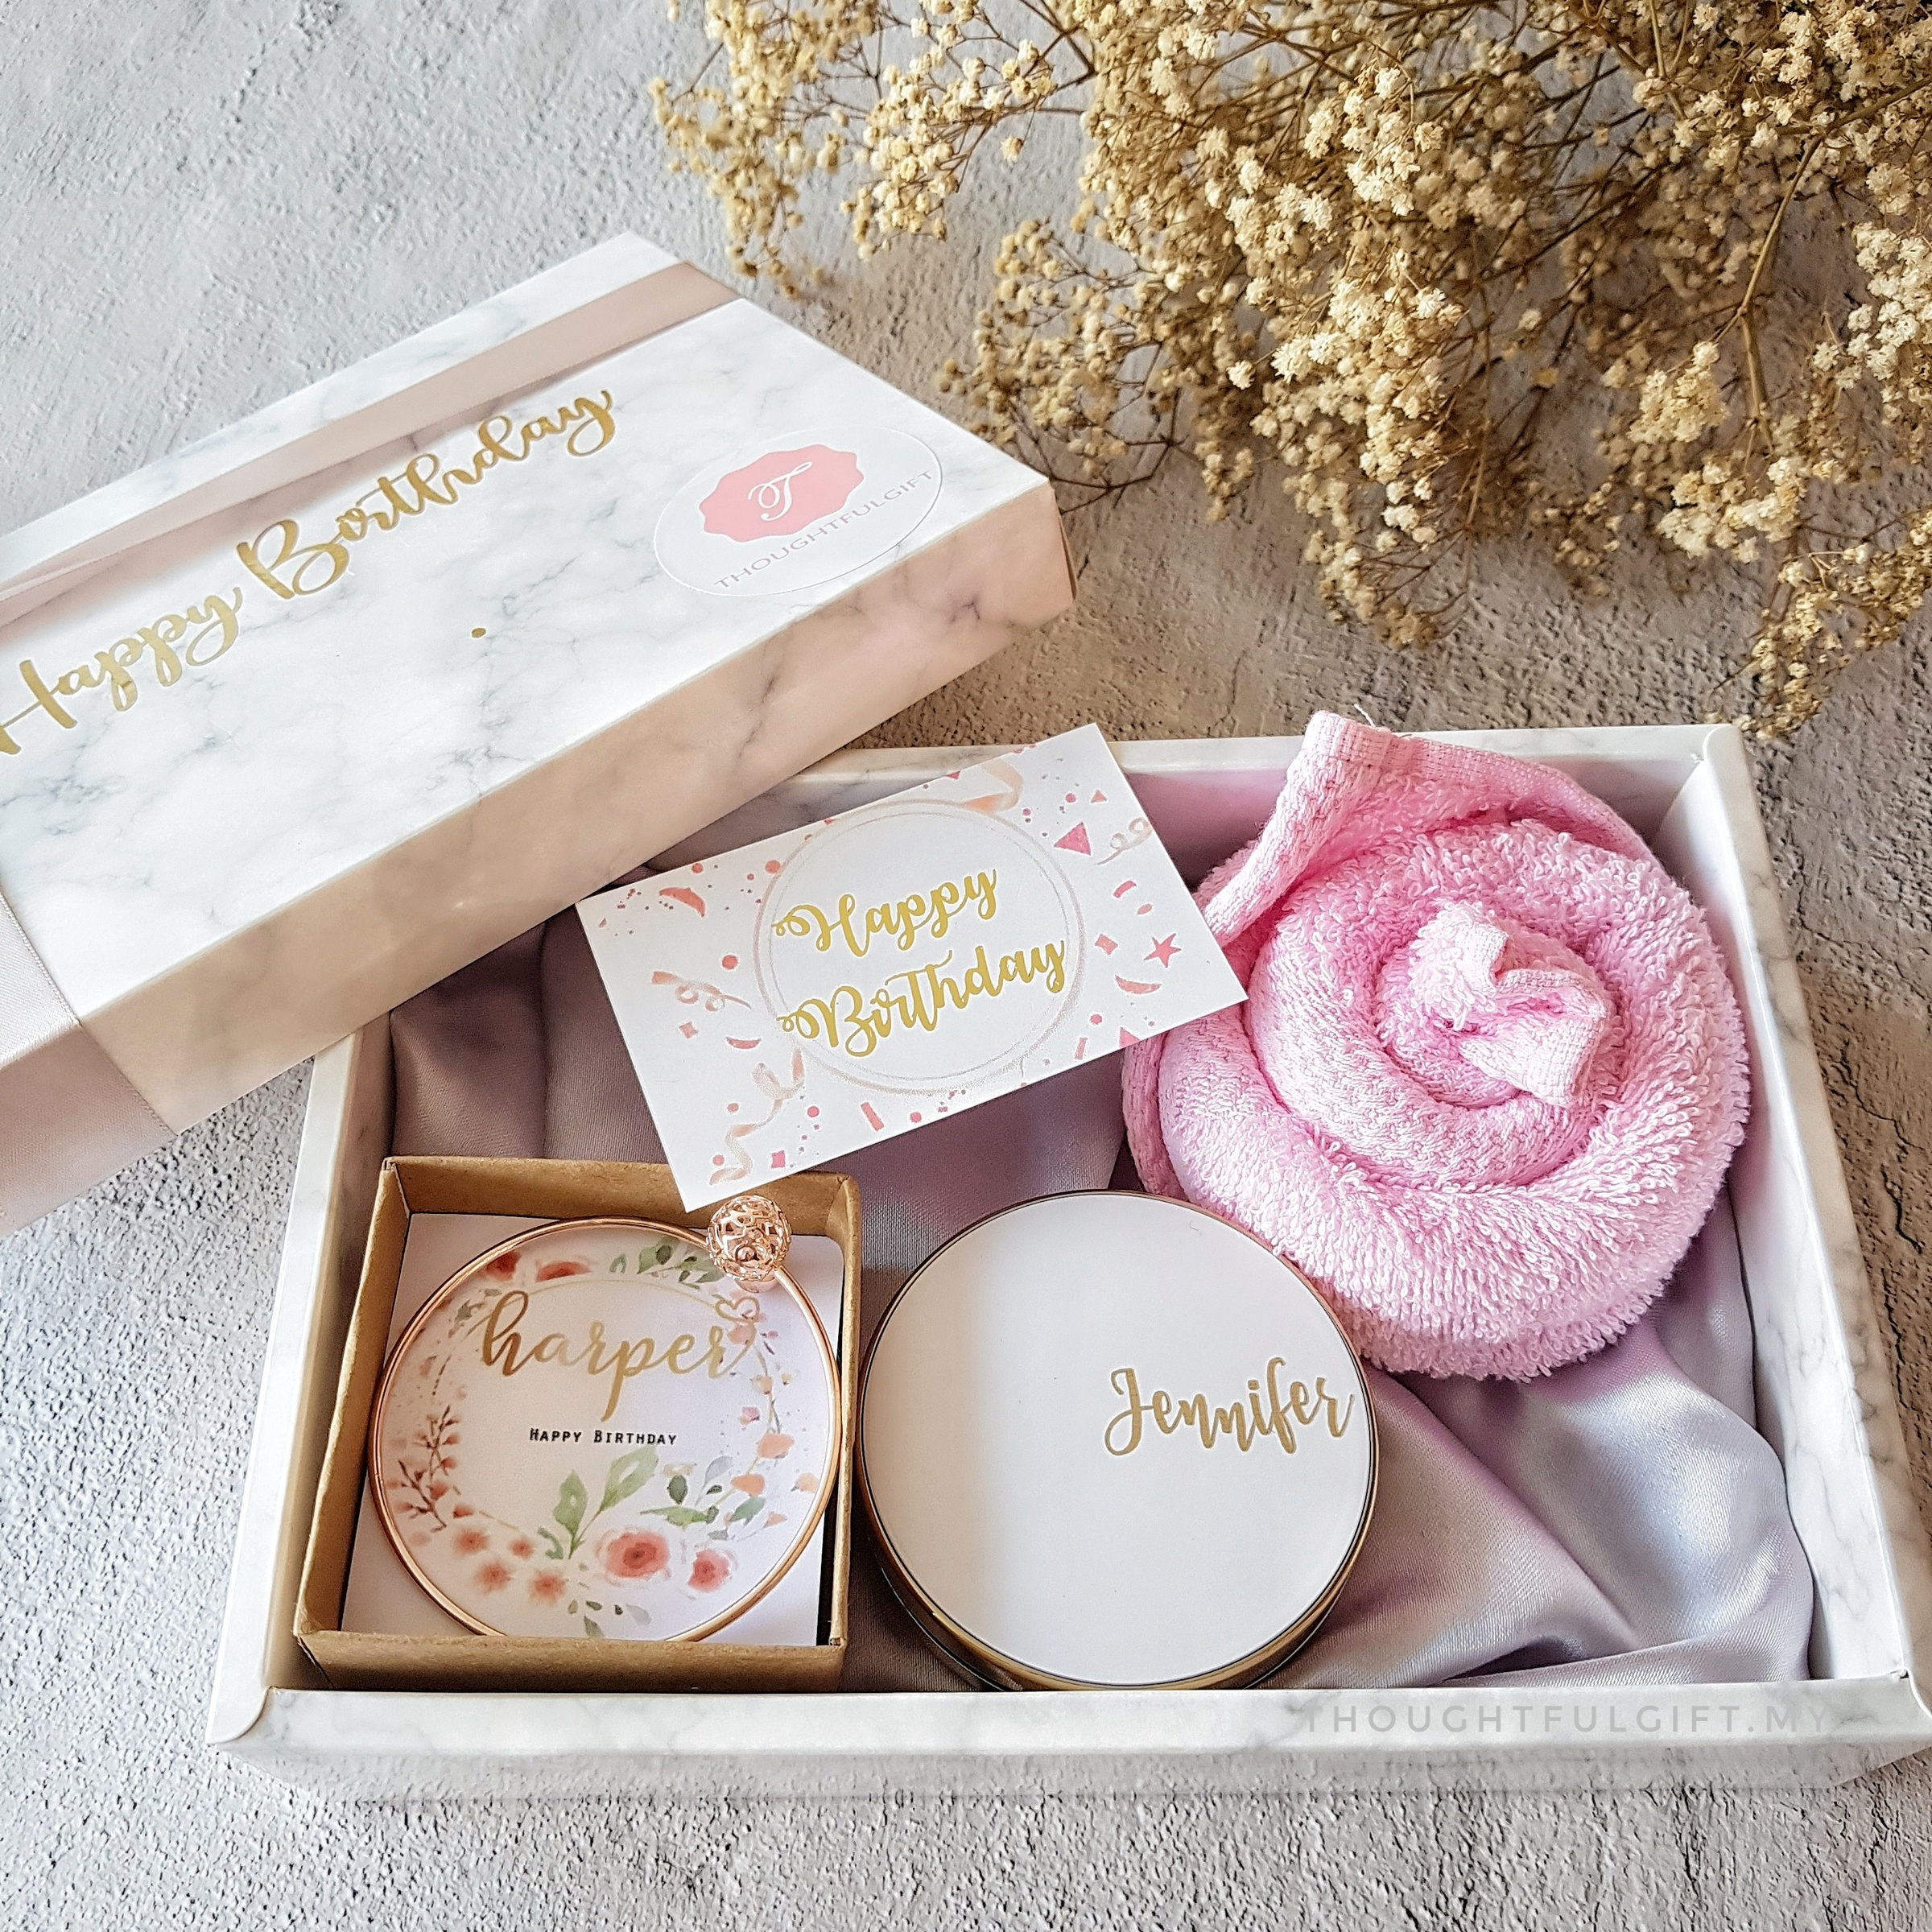 Thoughtfulgift | Our Collections - Personalized Accessories Gift Set for her